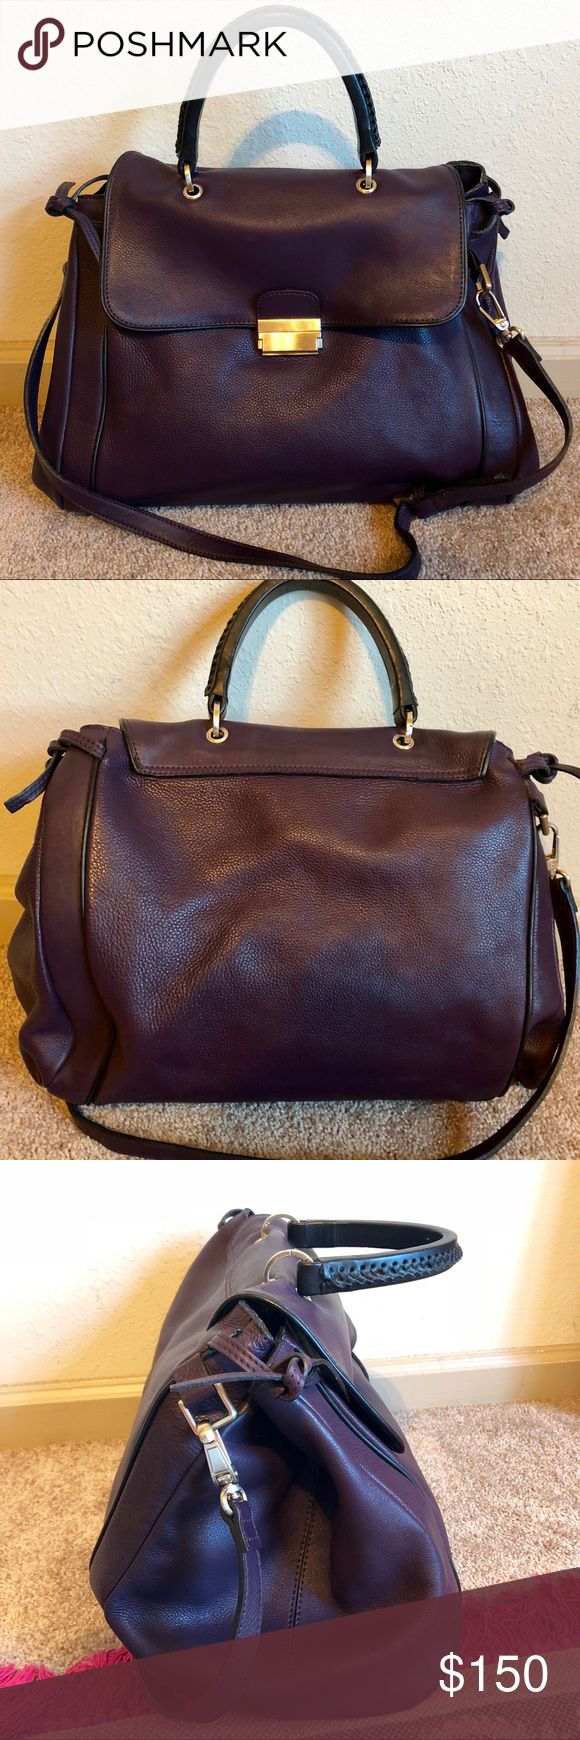 """Reiss Large Genuine Leather Tote Duffel Lock Bag Slide in lock works perfectly. Tied expandable sides. Double compartment with center zip pocket and attached inner zip pocket. Very minor wear, preowned condition. Measures 15""""x12""""x6"""" with additional expansion. Color is a dark plum. Reiss Bags Travel Bags"""